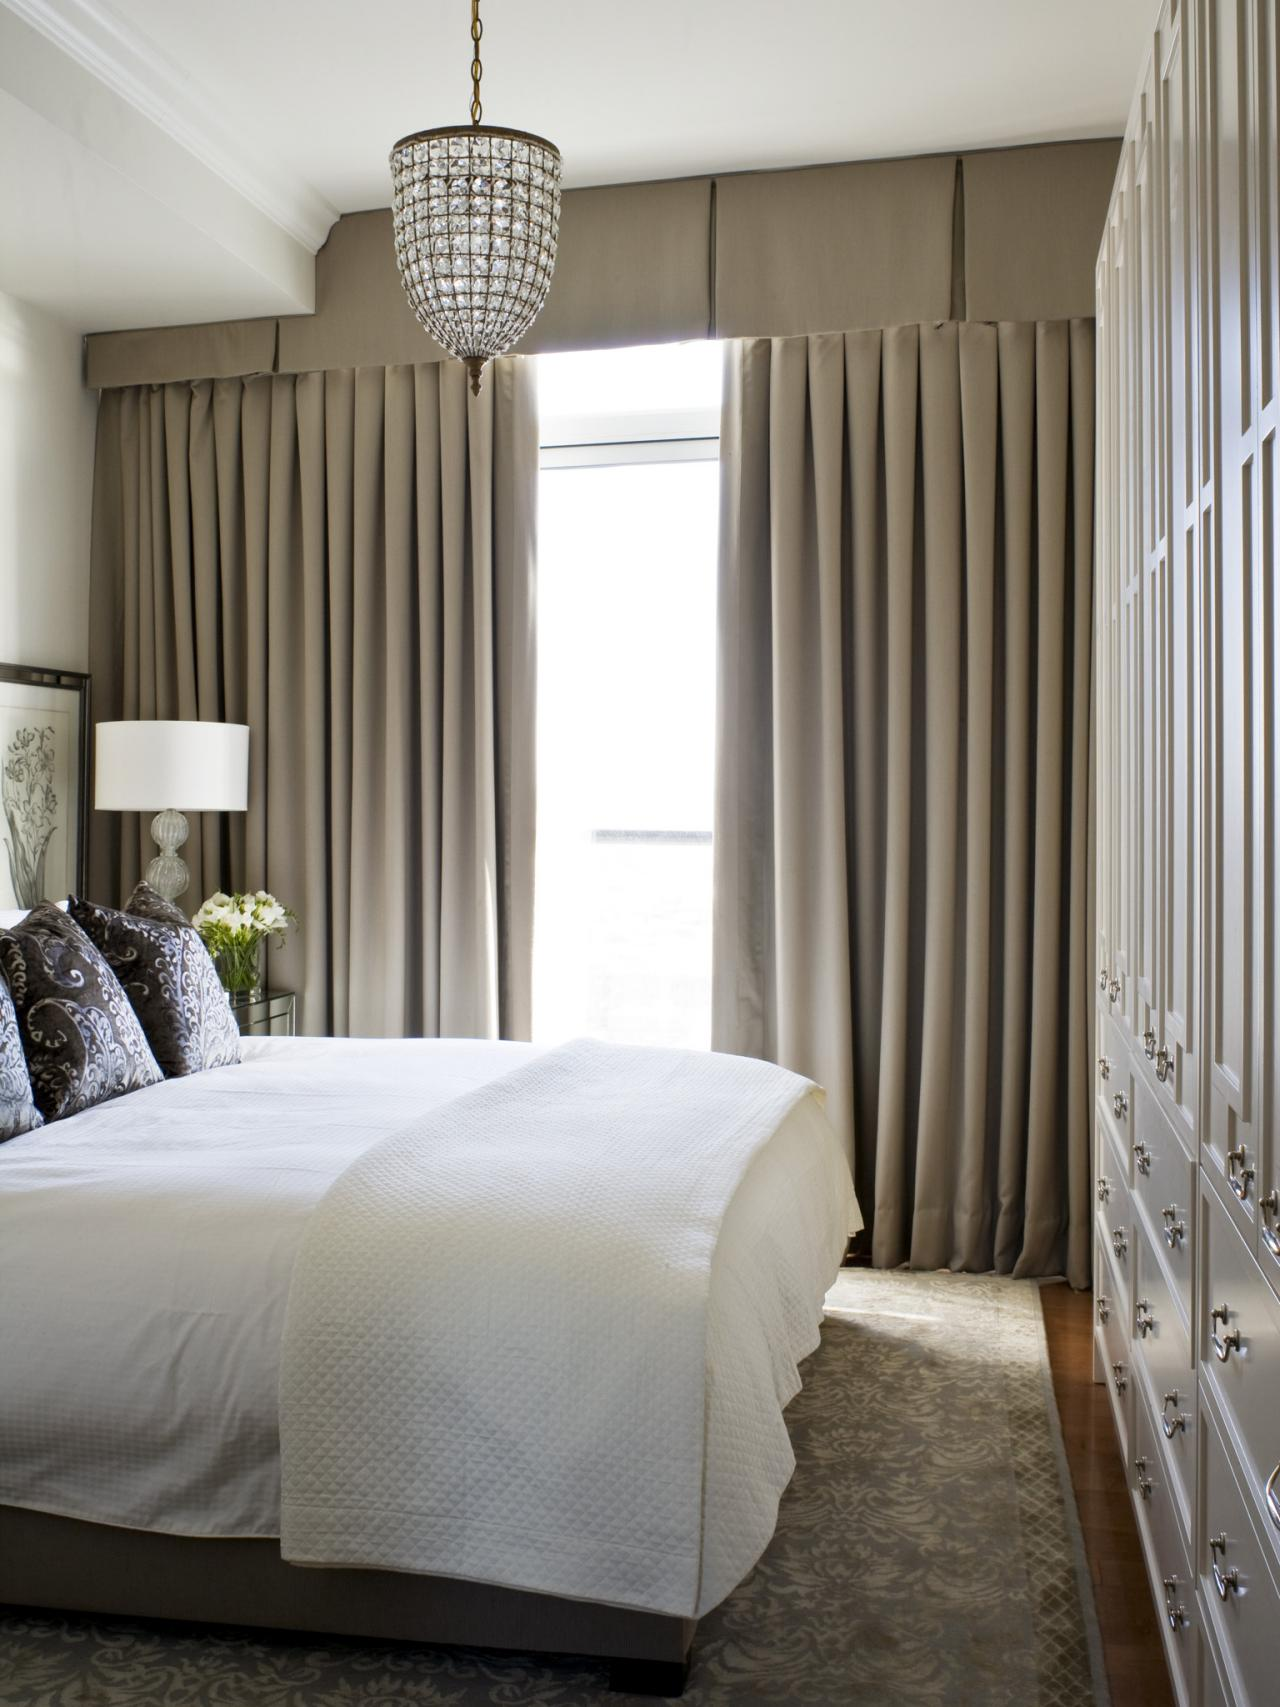 14 Ideas For A Small Bedroom Hgtv 39 S Decorating Design Blog Hgtv